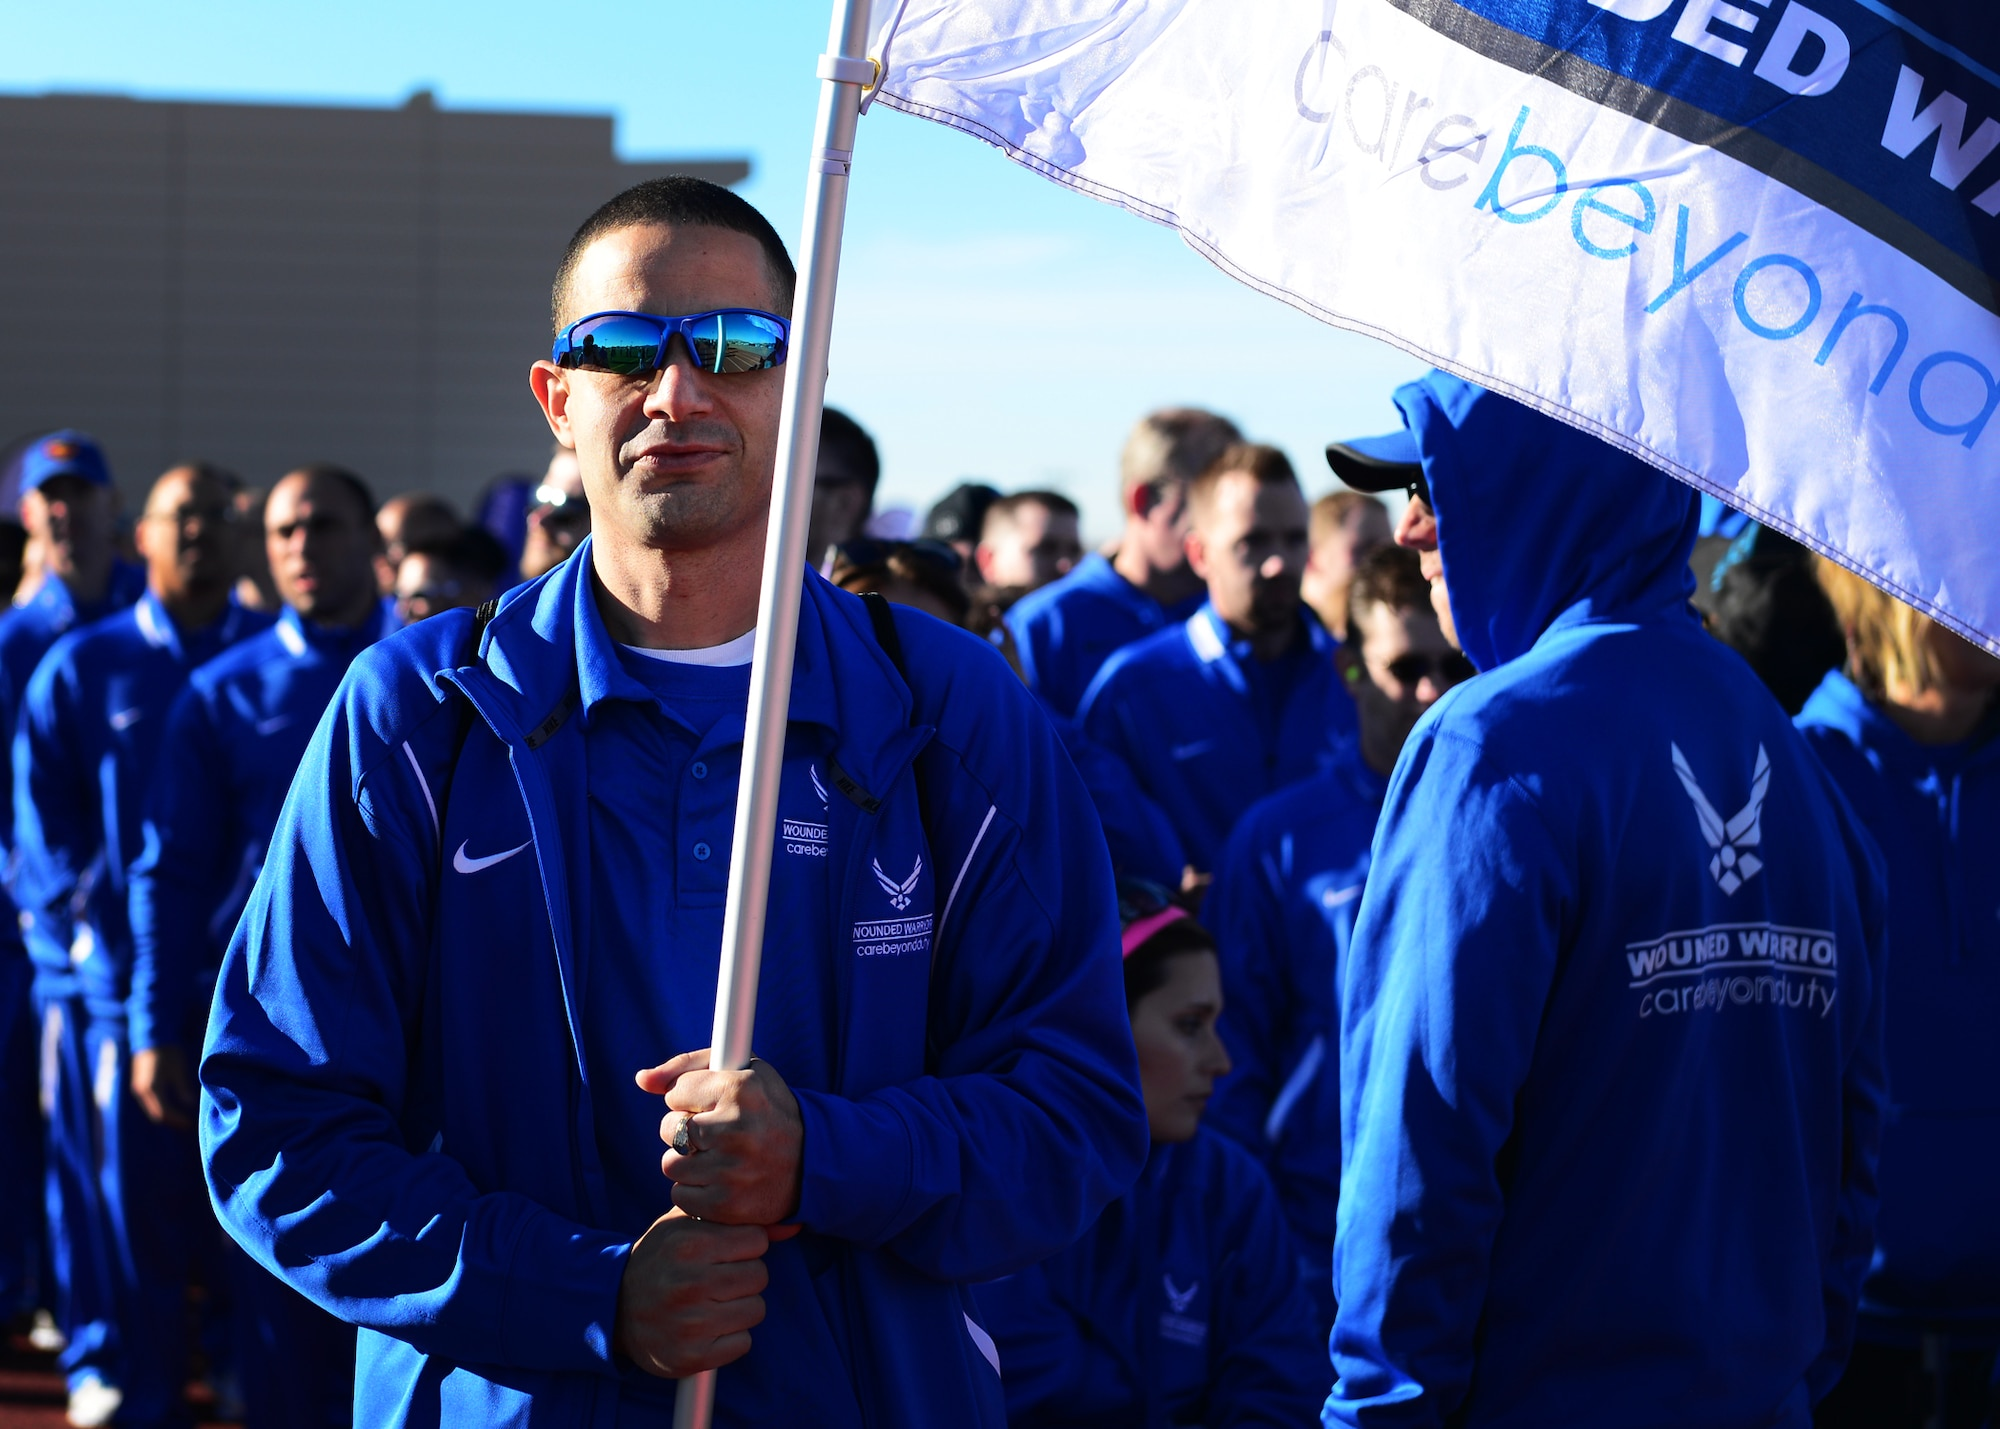 U.S. Air Force retired Tech. Sgt. Freddie Rosario, 2017 AF Warrior Game Trials competitor, carries the Wounded Warrior flag during the opening ceremony of the Air Force trials at the Warrior Fitness Center Feb. 24, 2017 at Nellis Air Force Base, Nev. Dozens of U.S. Air Force, U.S. Army, Australian and Great Britain wounded warriors gathered for the fourth annual competition. (U.S. Air Force photo by Senior Airman Chip Pons)